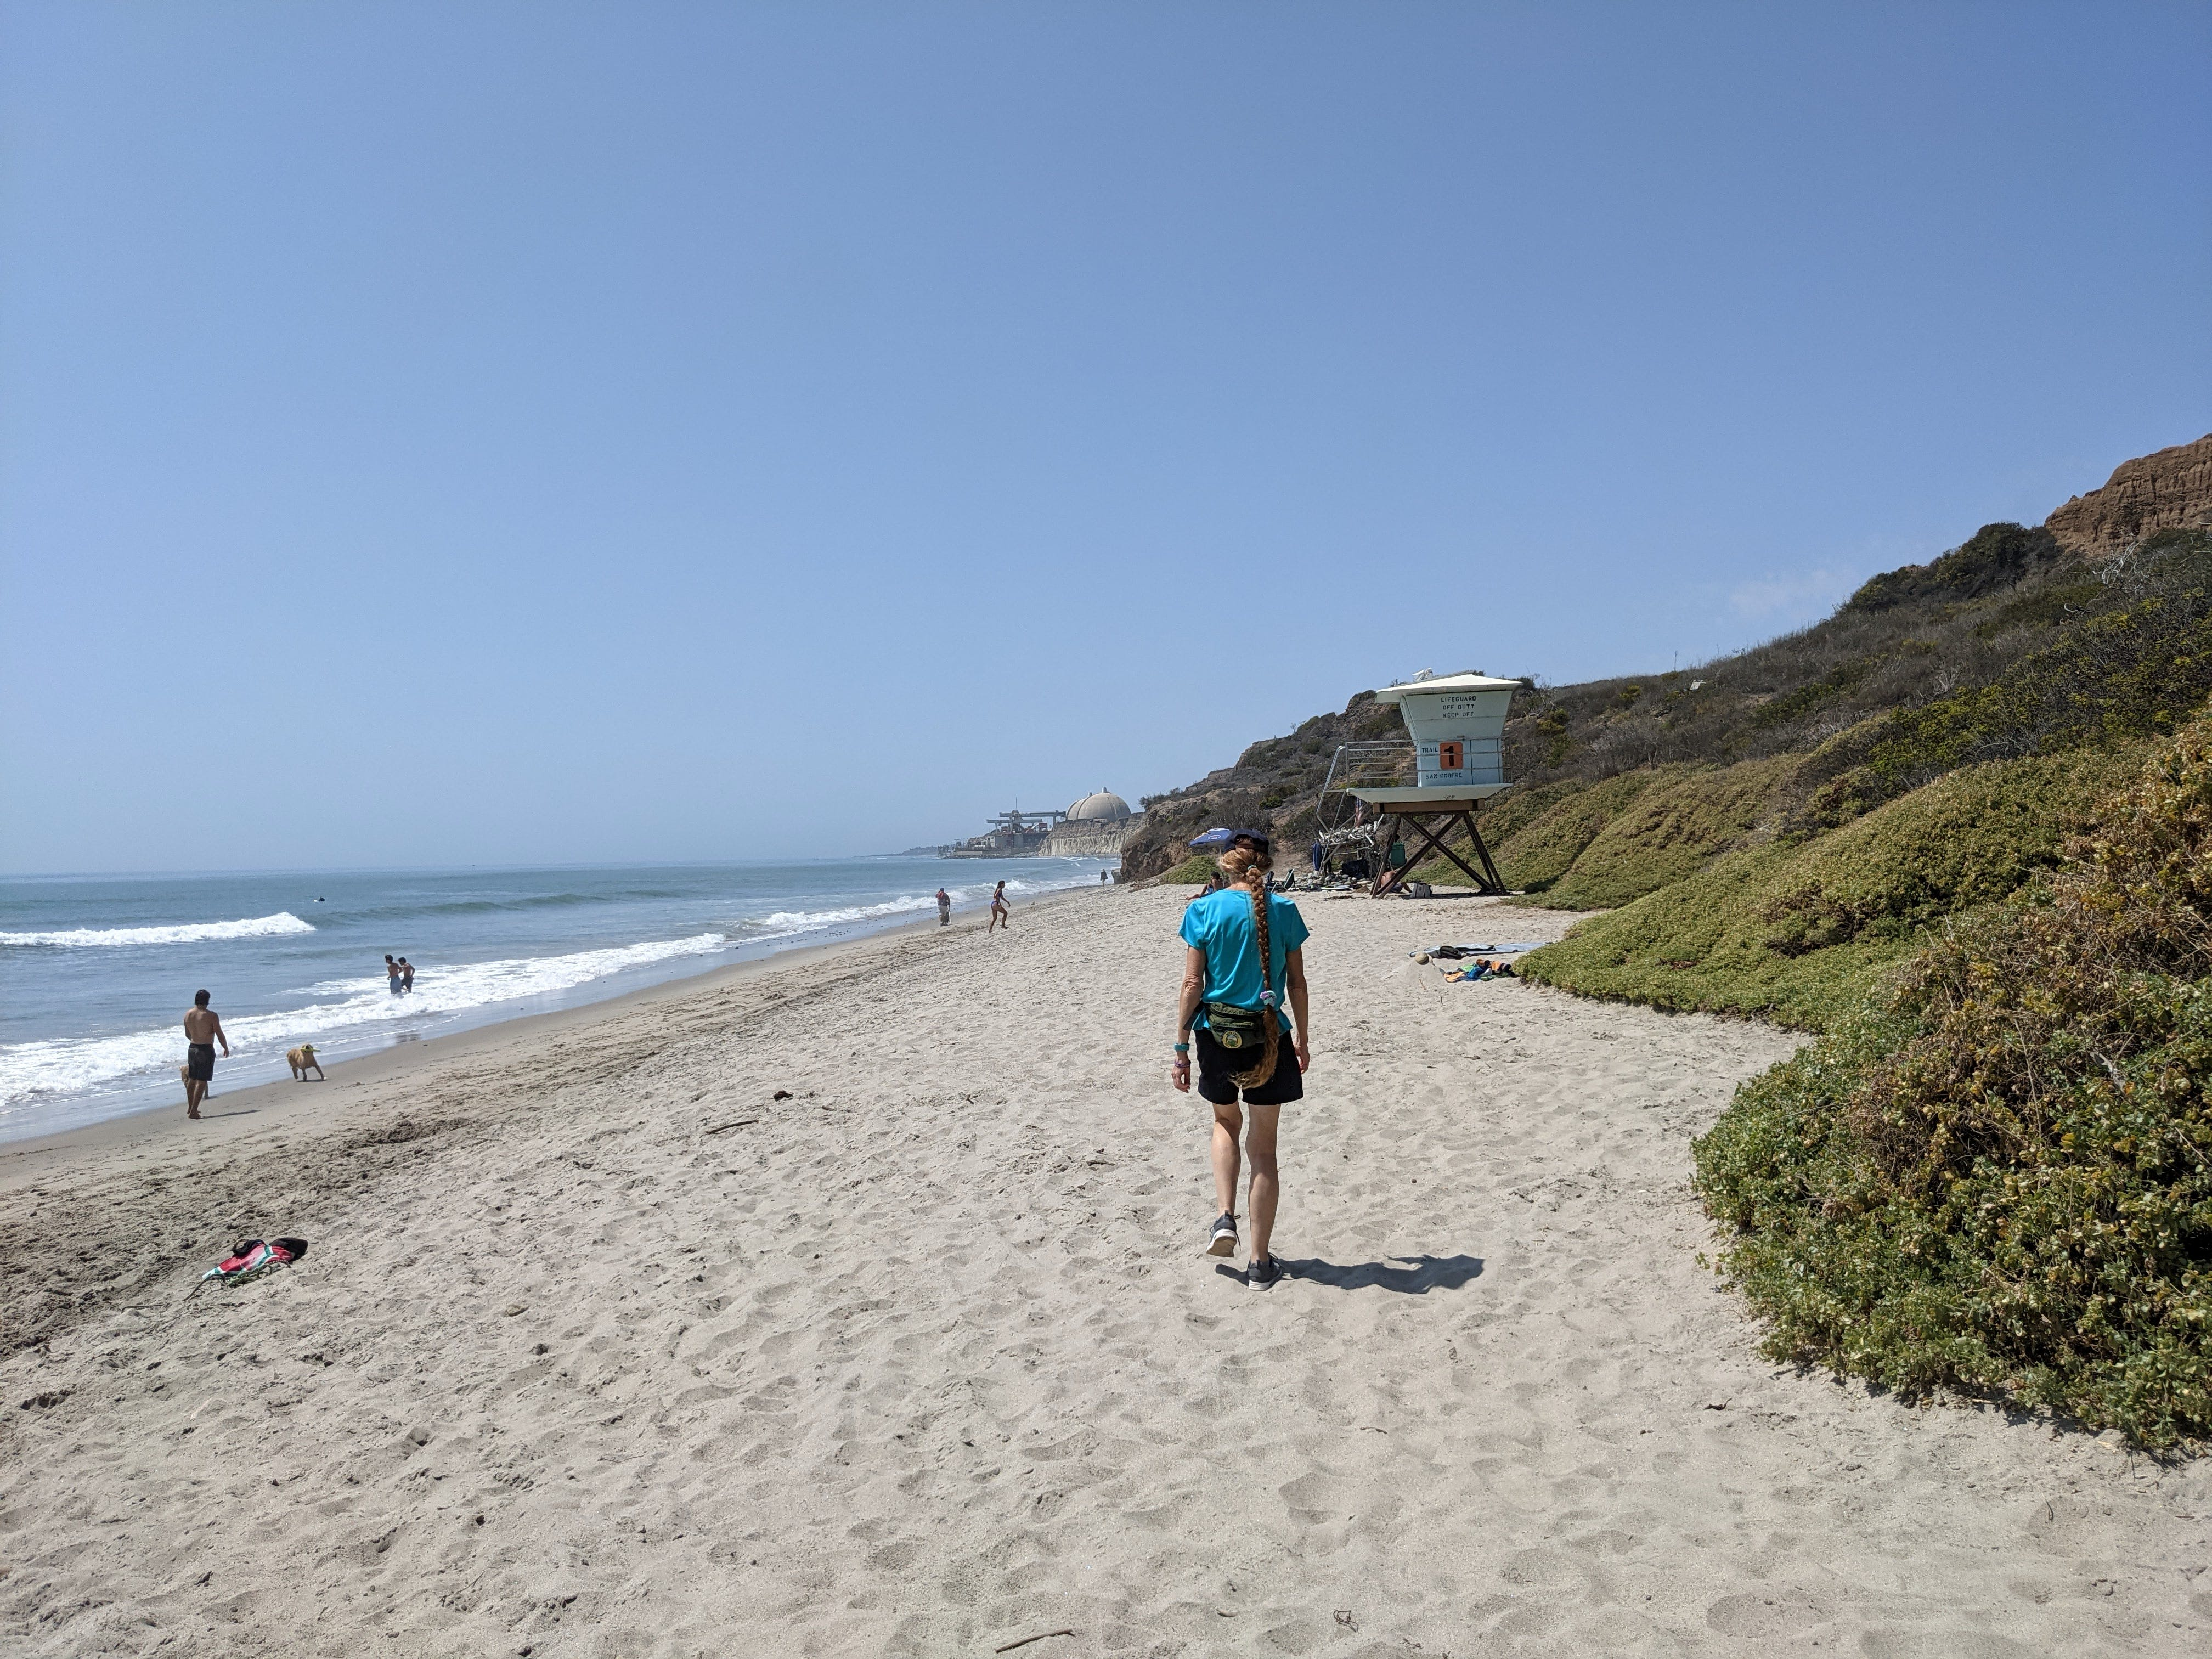 Woman walking along the sand towards a lifeguard tower on San Onofre State Beach in San Diego County